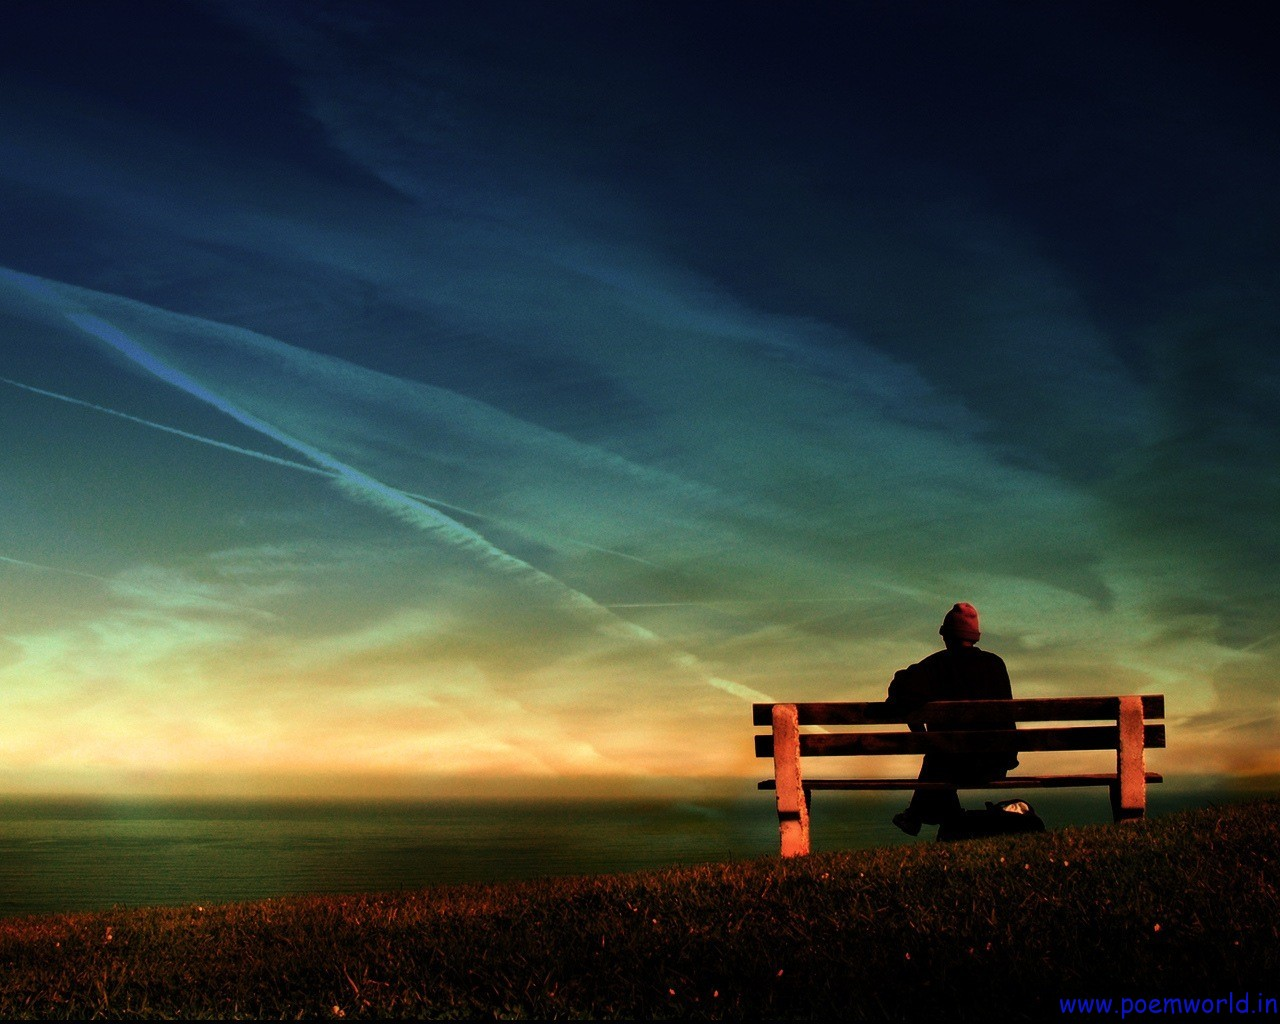 Download Sad Alone Wallpapers Most beautiful places in the world 1280x1024